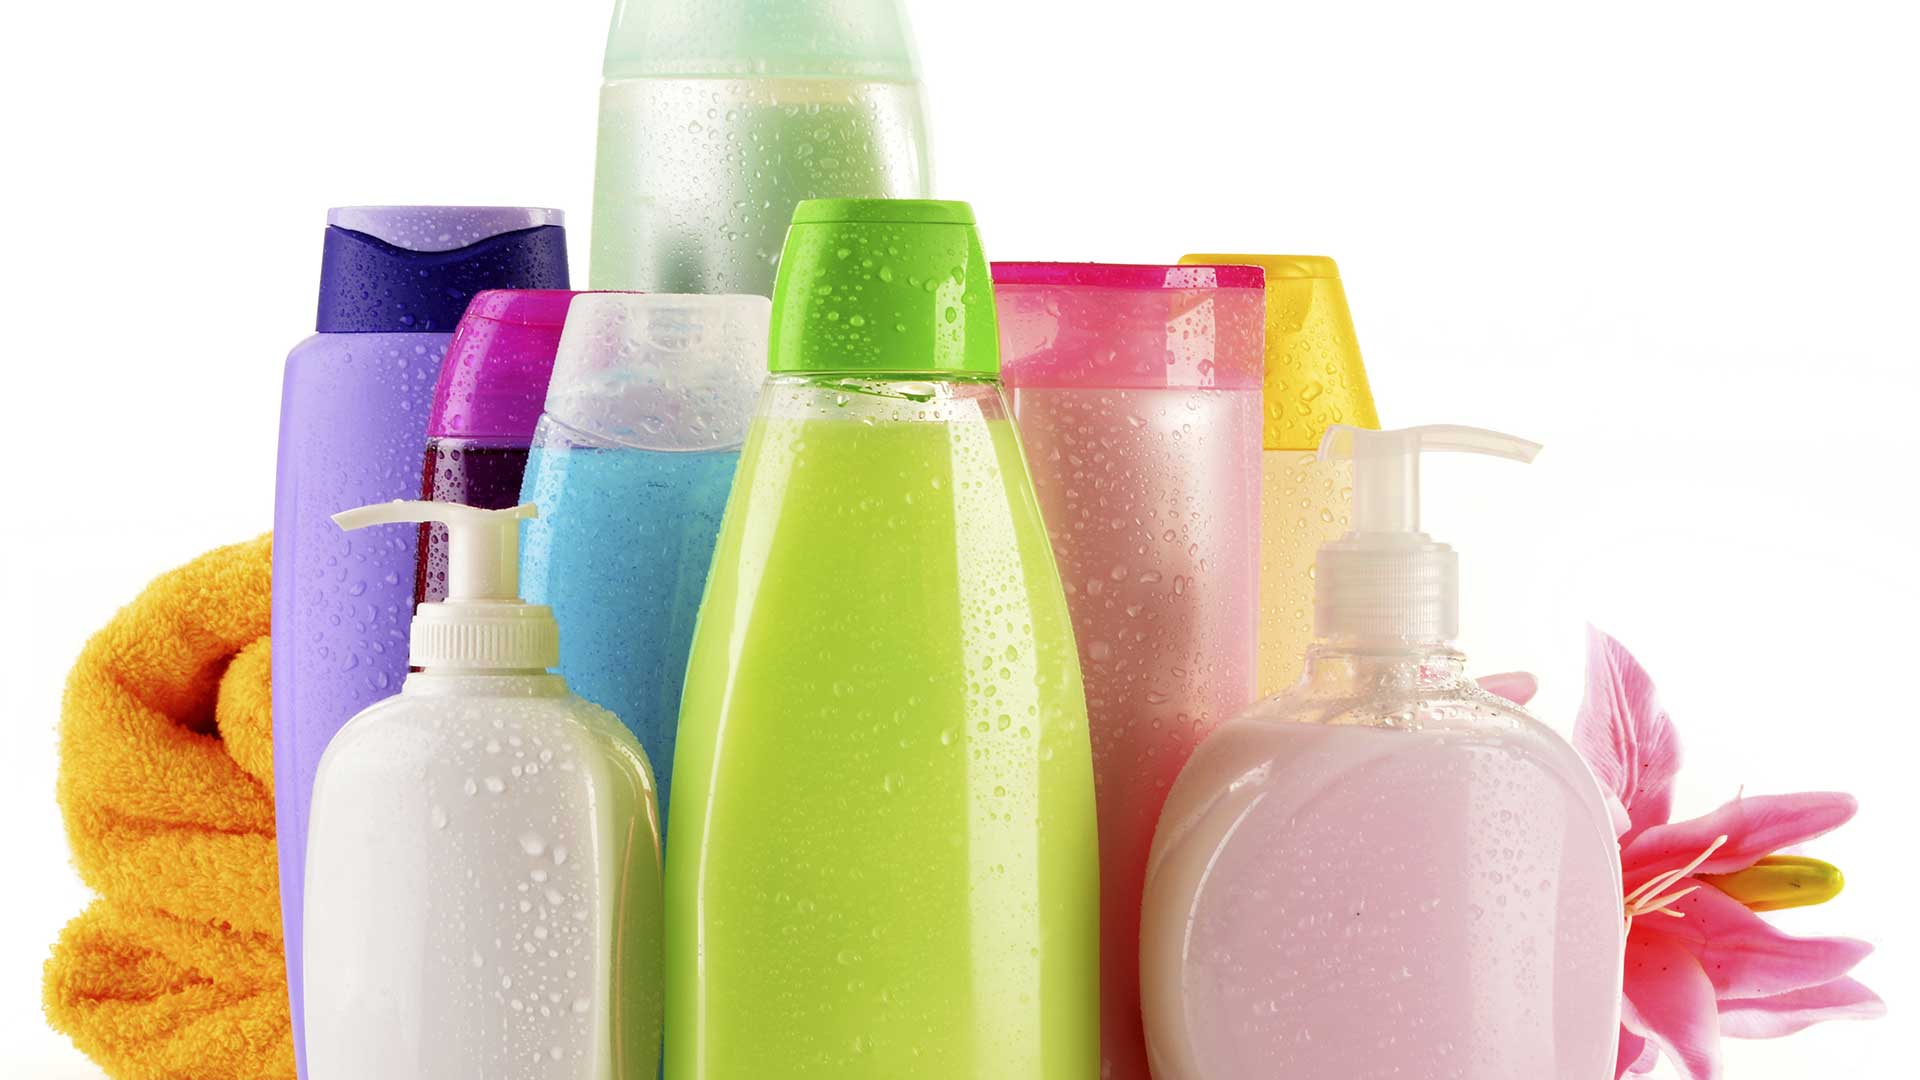 toiletries personal care market keep